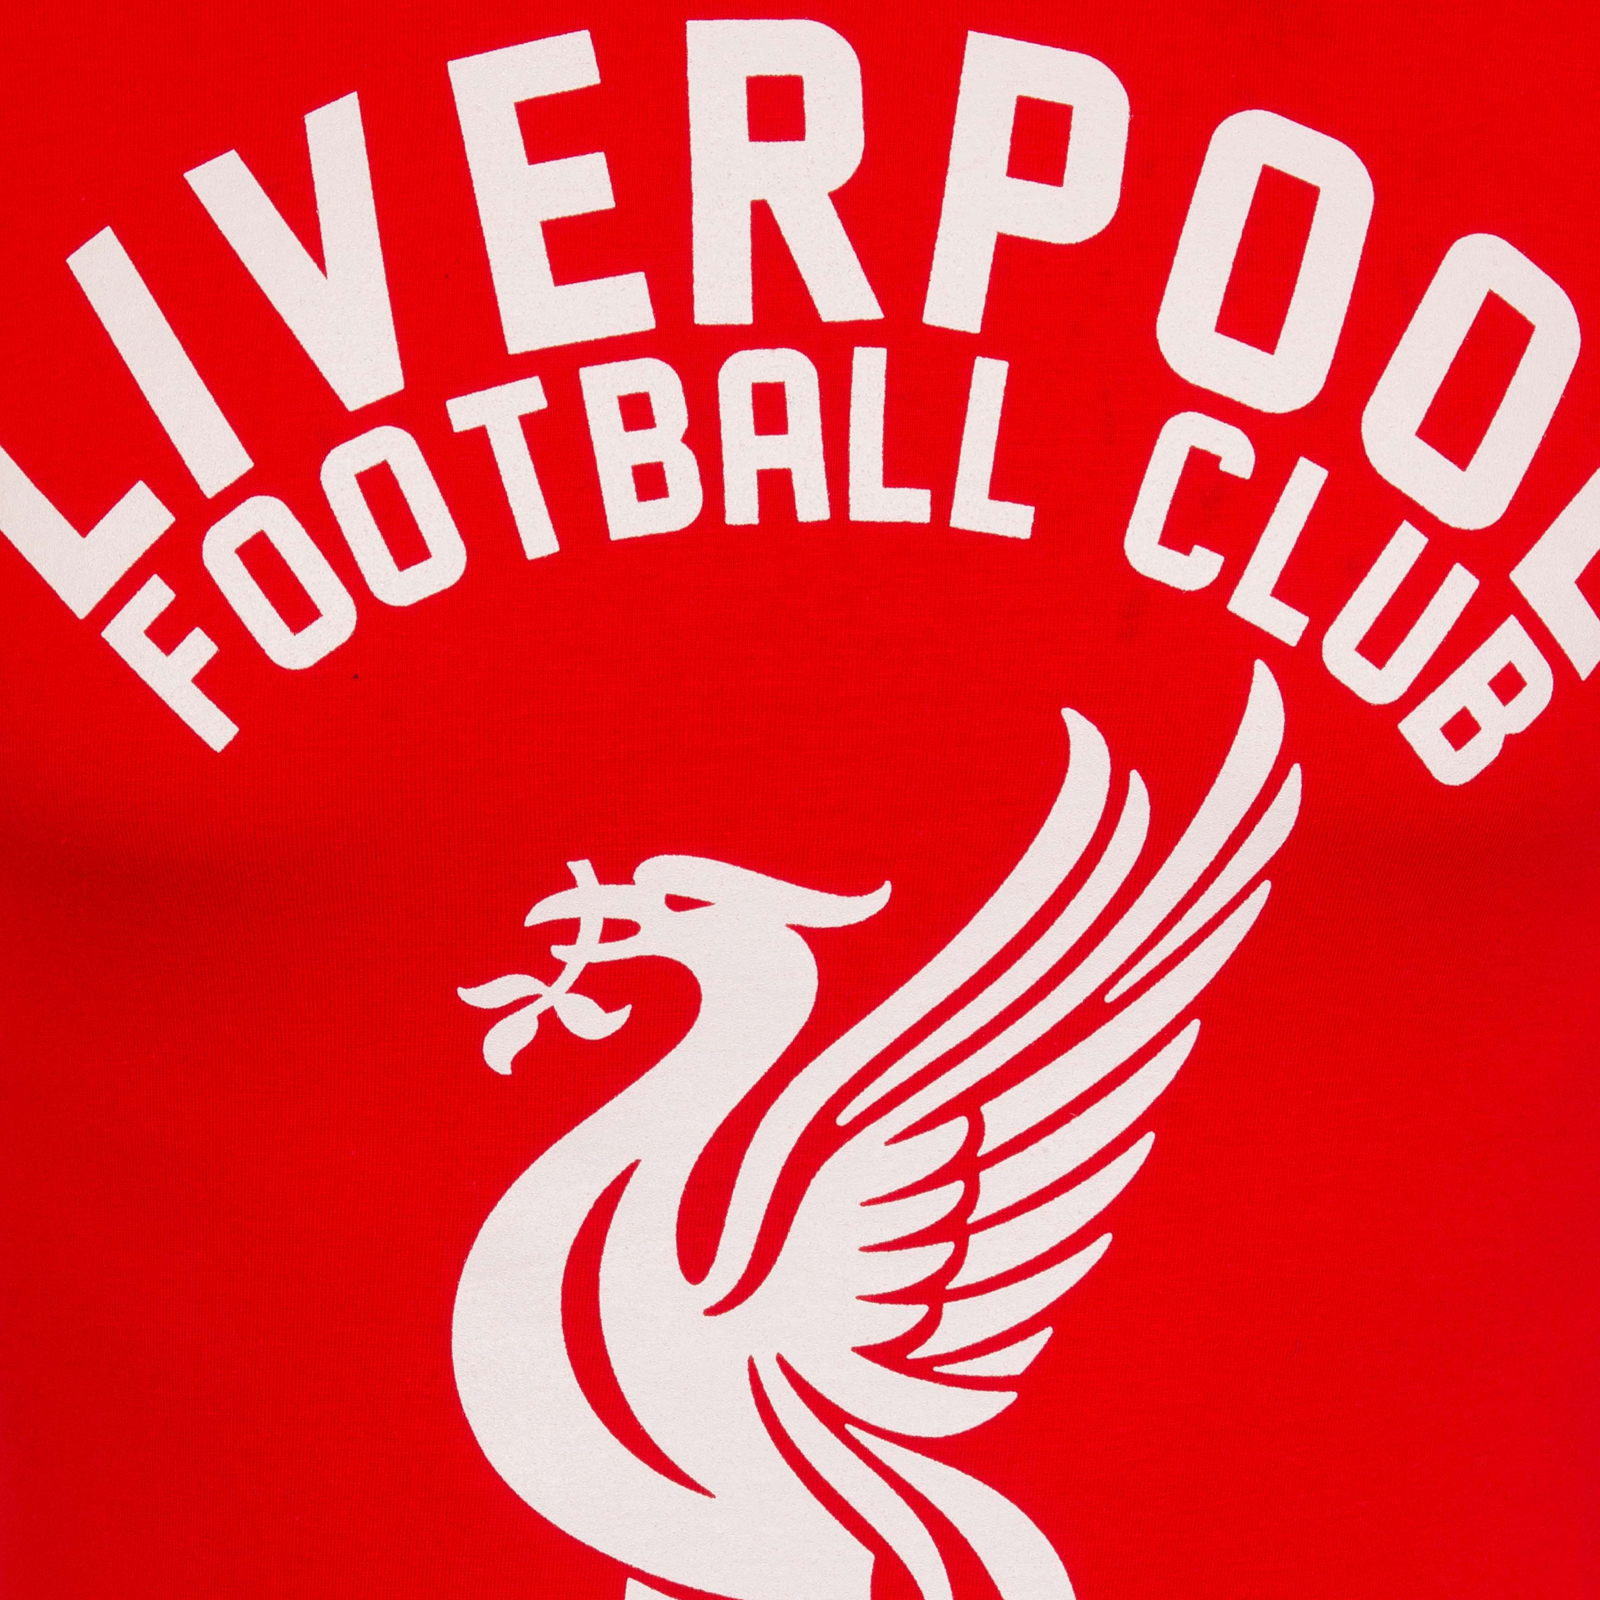 Liverpool-FC-officiel-T-shirt-theme-football-motif-graphique-homme